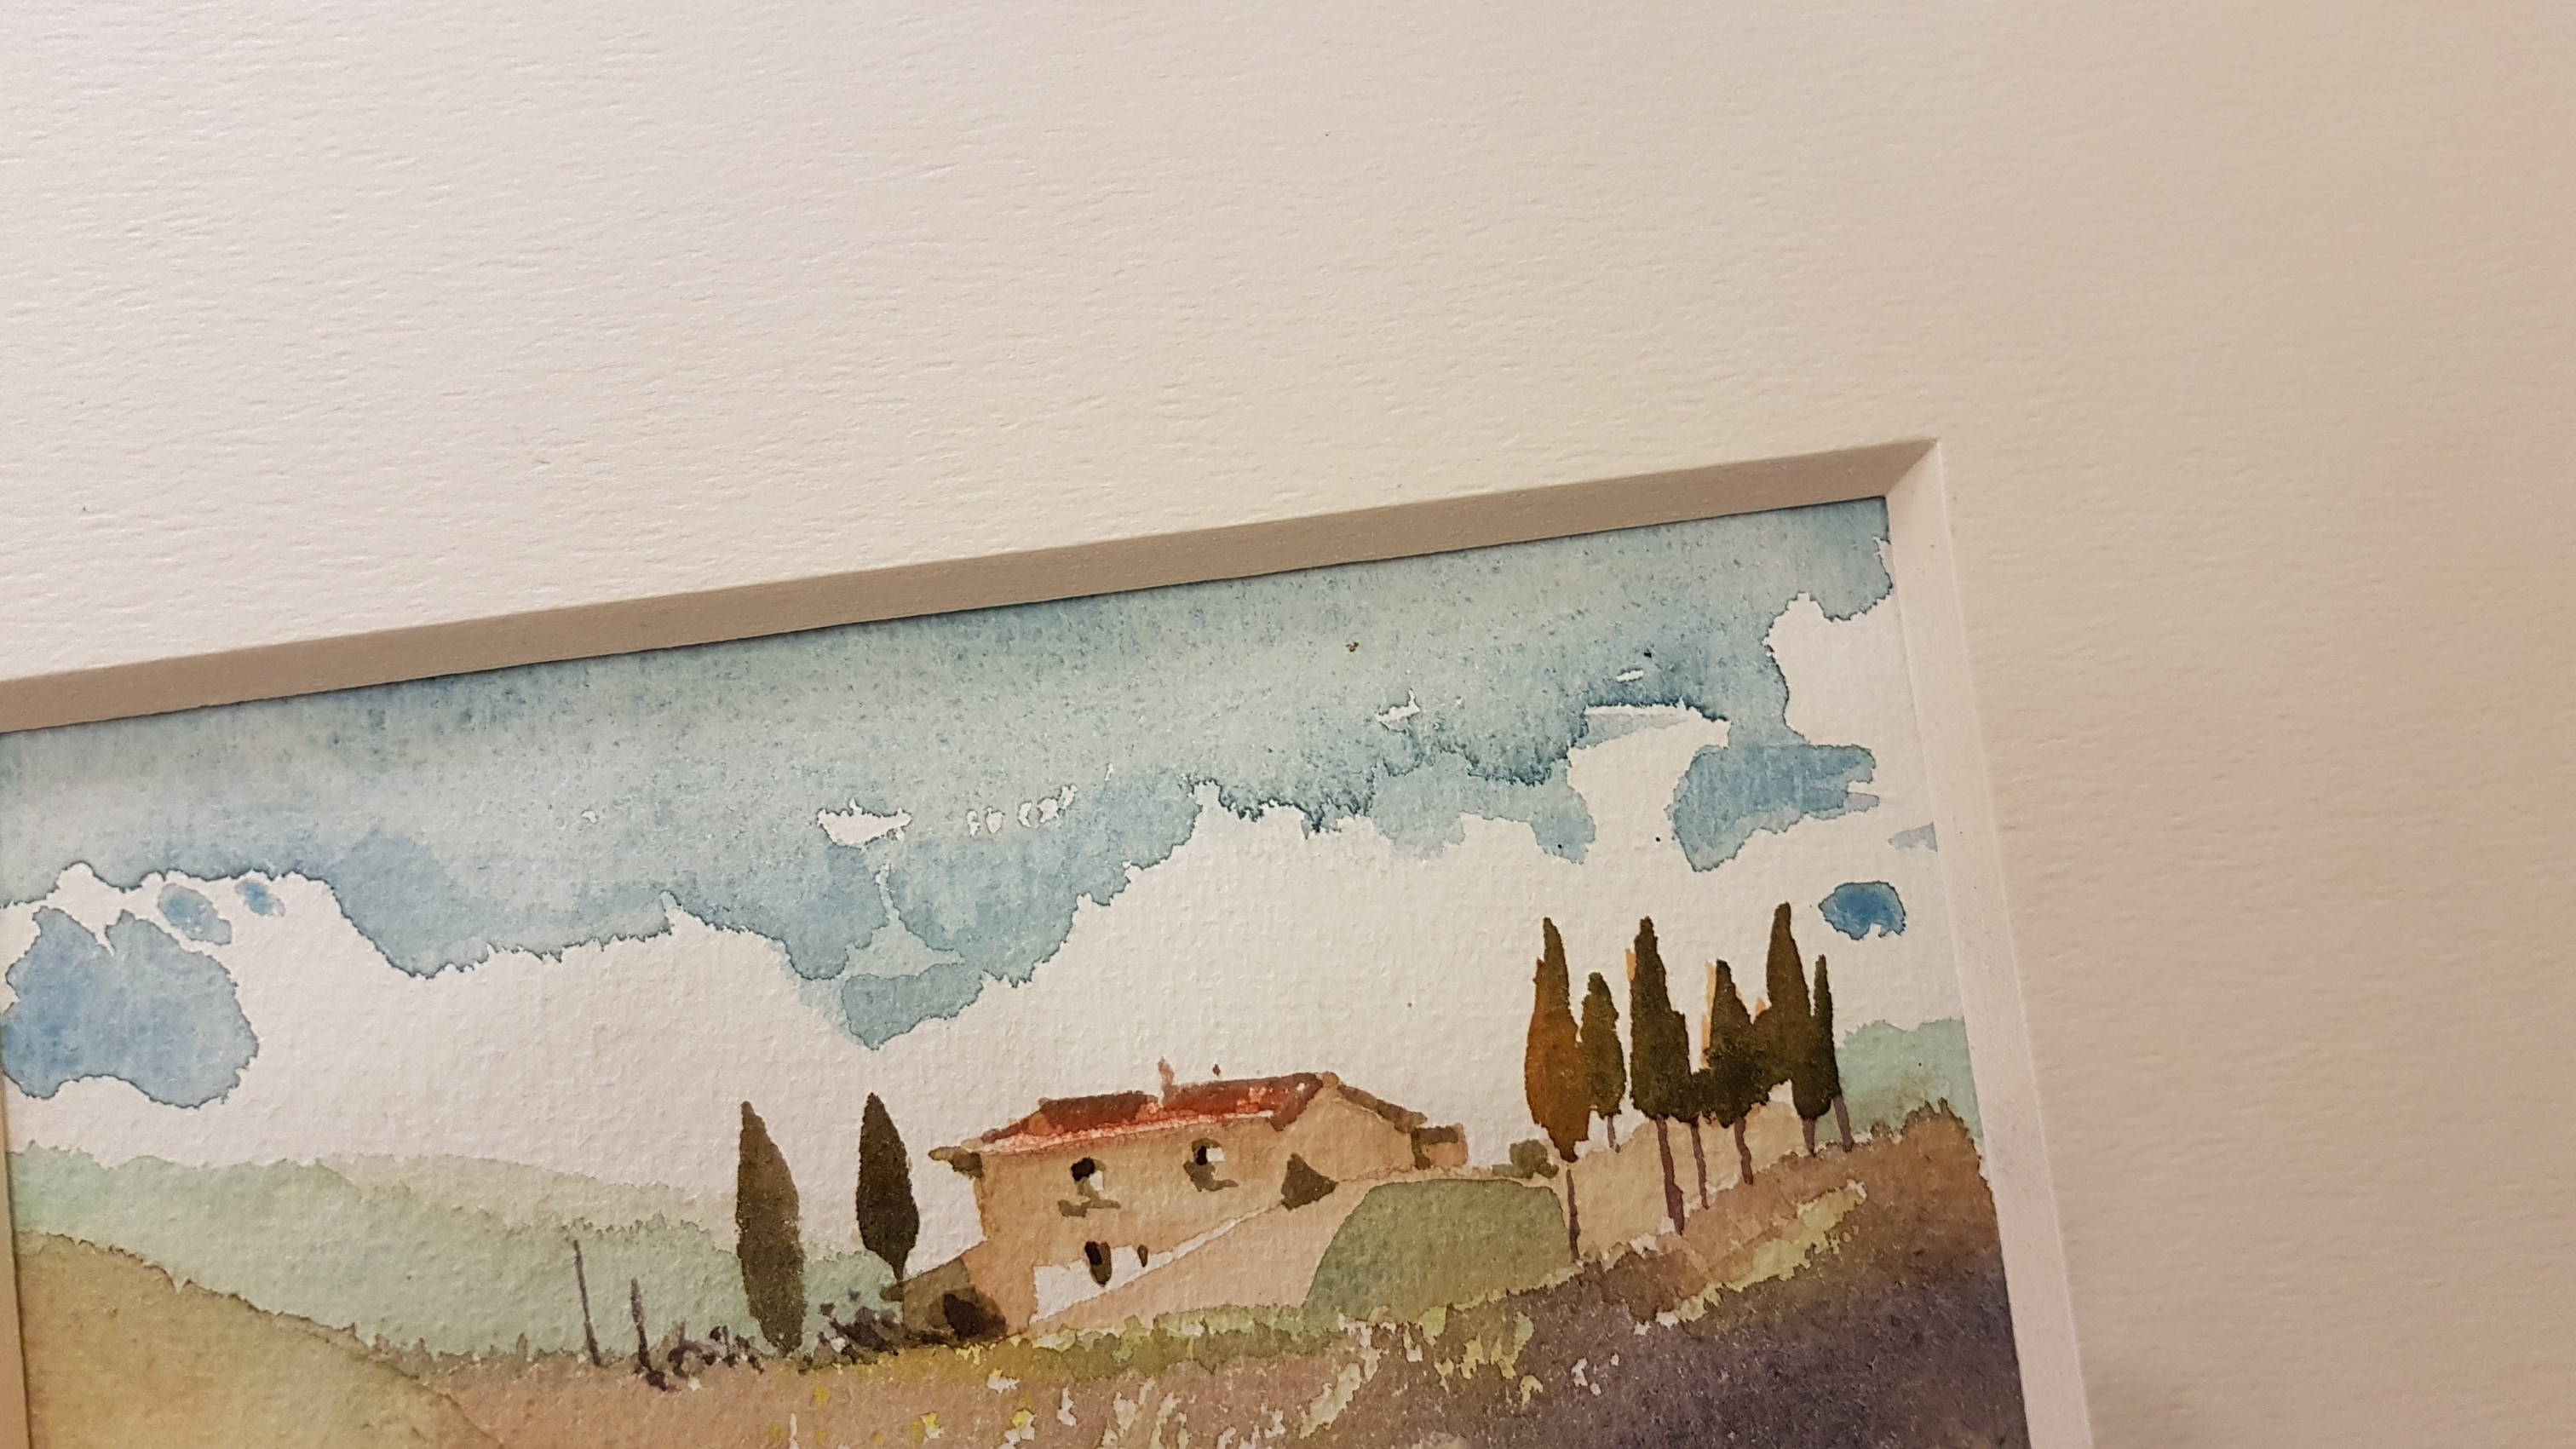 Estate in toscana, summer in tuscany